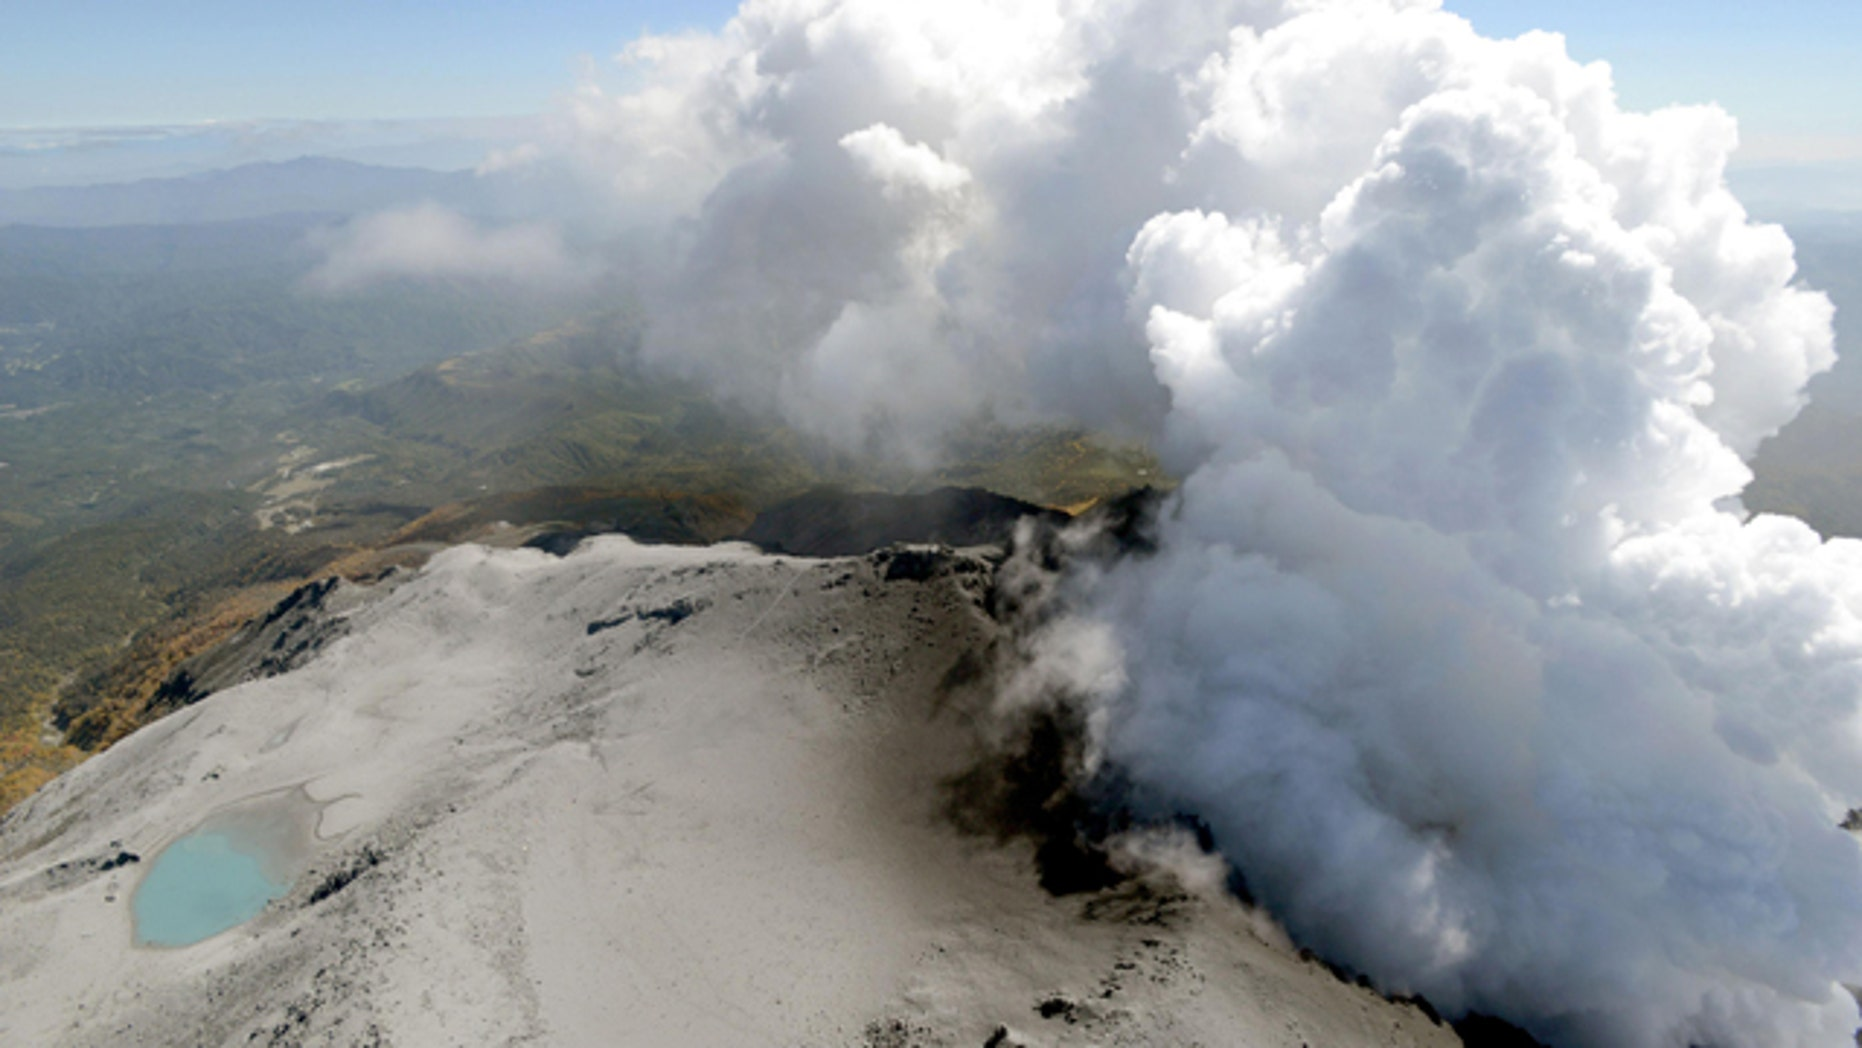 September 30, 2014: An aerial view shows volcanic smoke and fumes rising from the craters of Mount Ontake, central Japan. (AP Photo/Kyodo News)